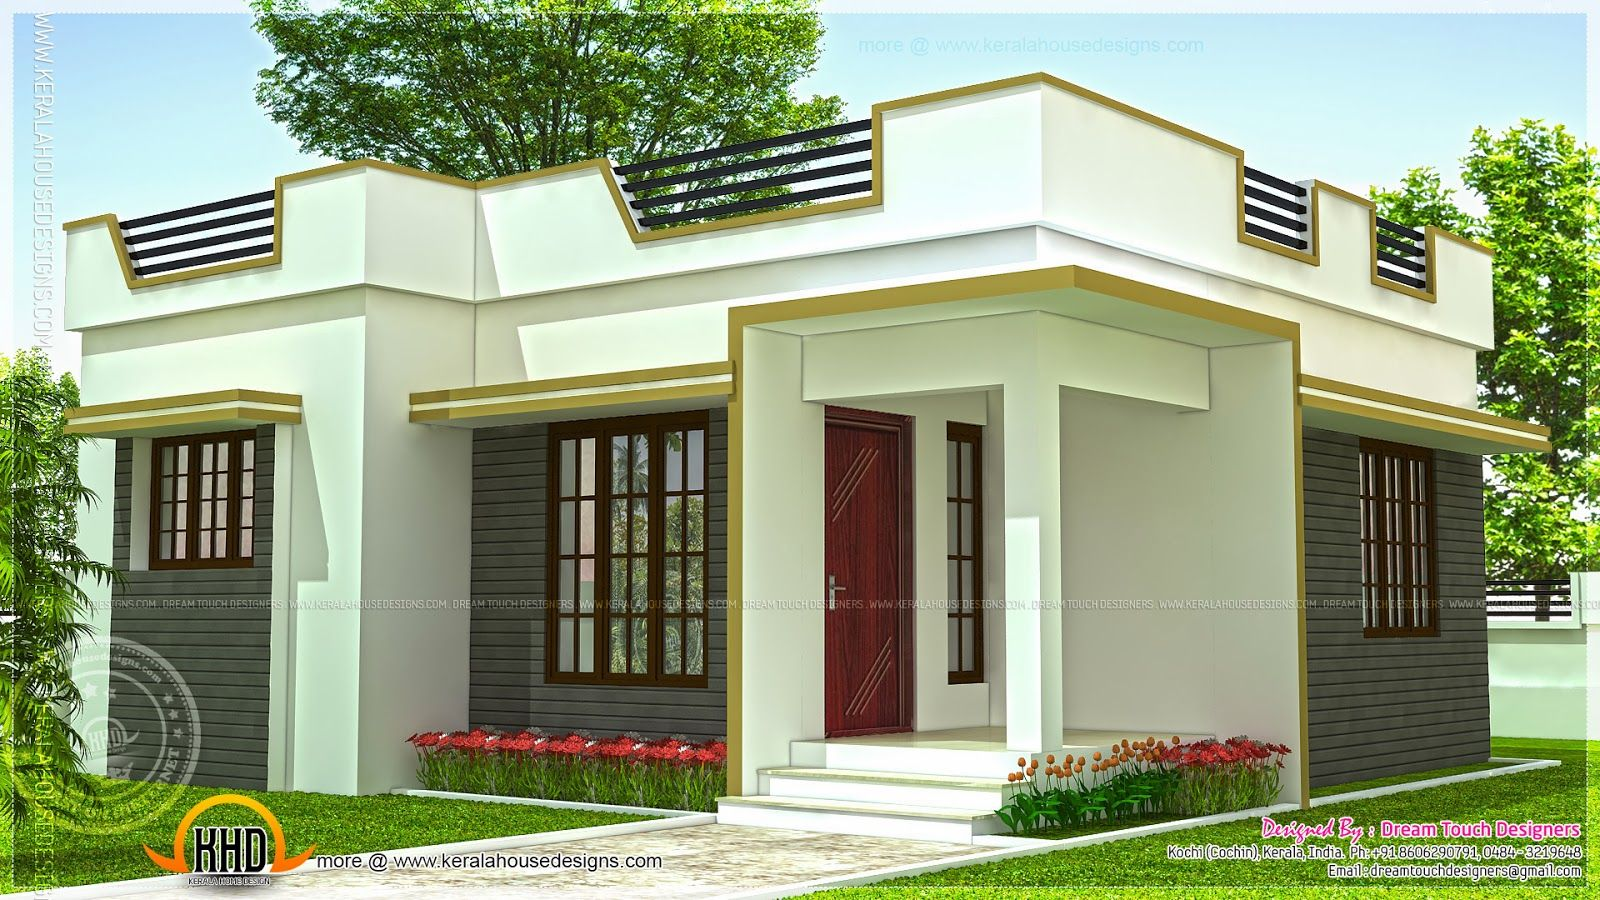 lately 21 small house design kerala small house keralajpg 1600900 lately 21 small house design kerala small house keralajpg 1600900